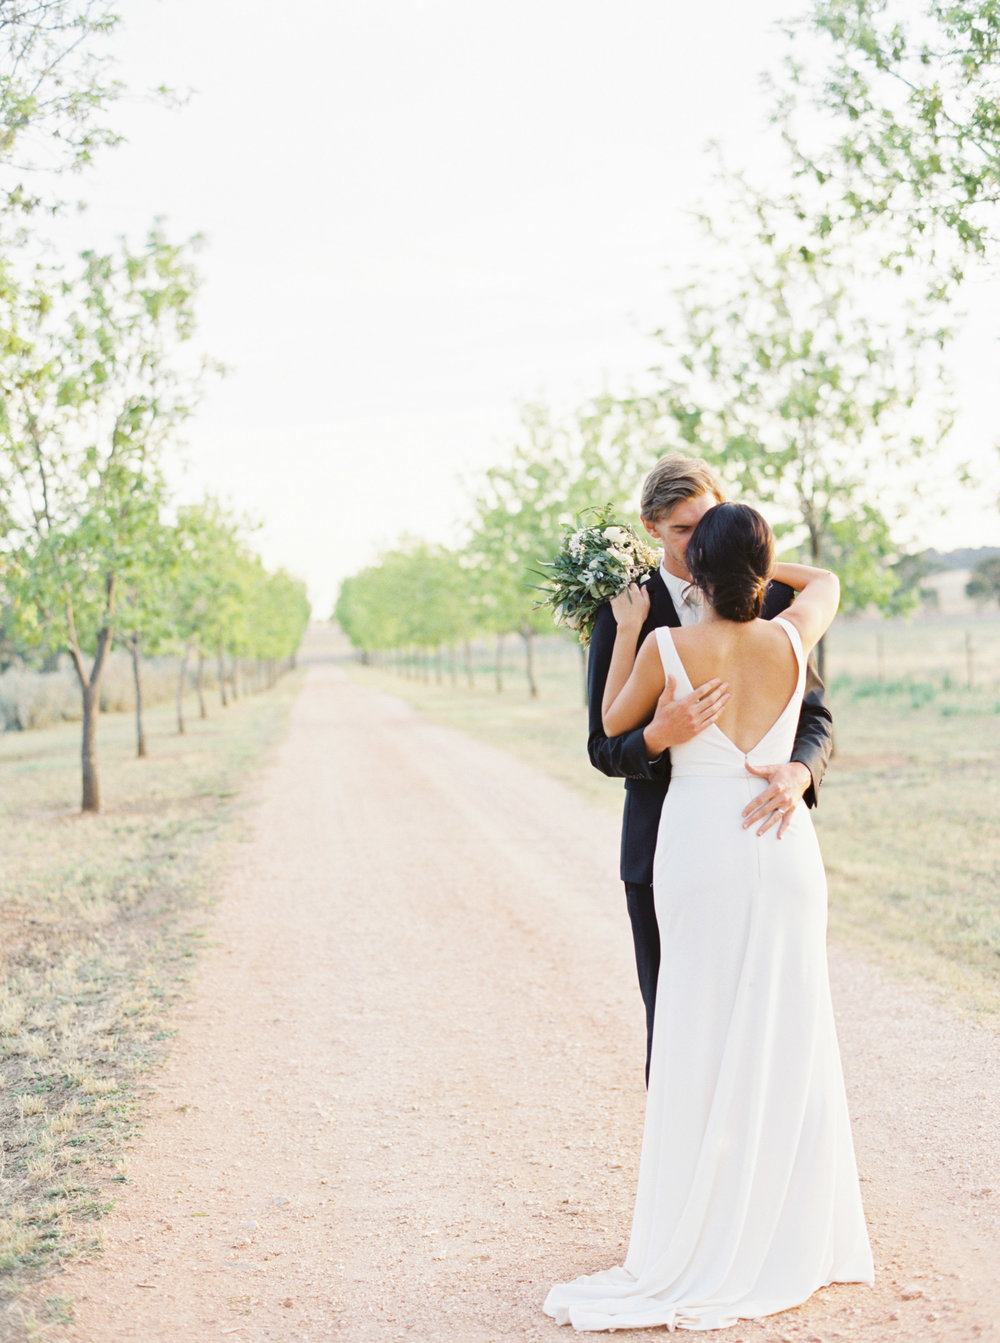 00057- Olive Tree Mediterranean Wedding in Mudgee NSW Australia Fine Art Film Wedding Lifestyle Photographer Sheri McMahon_.jpg